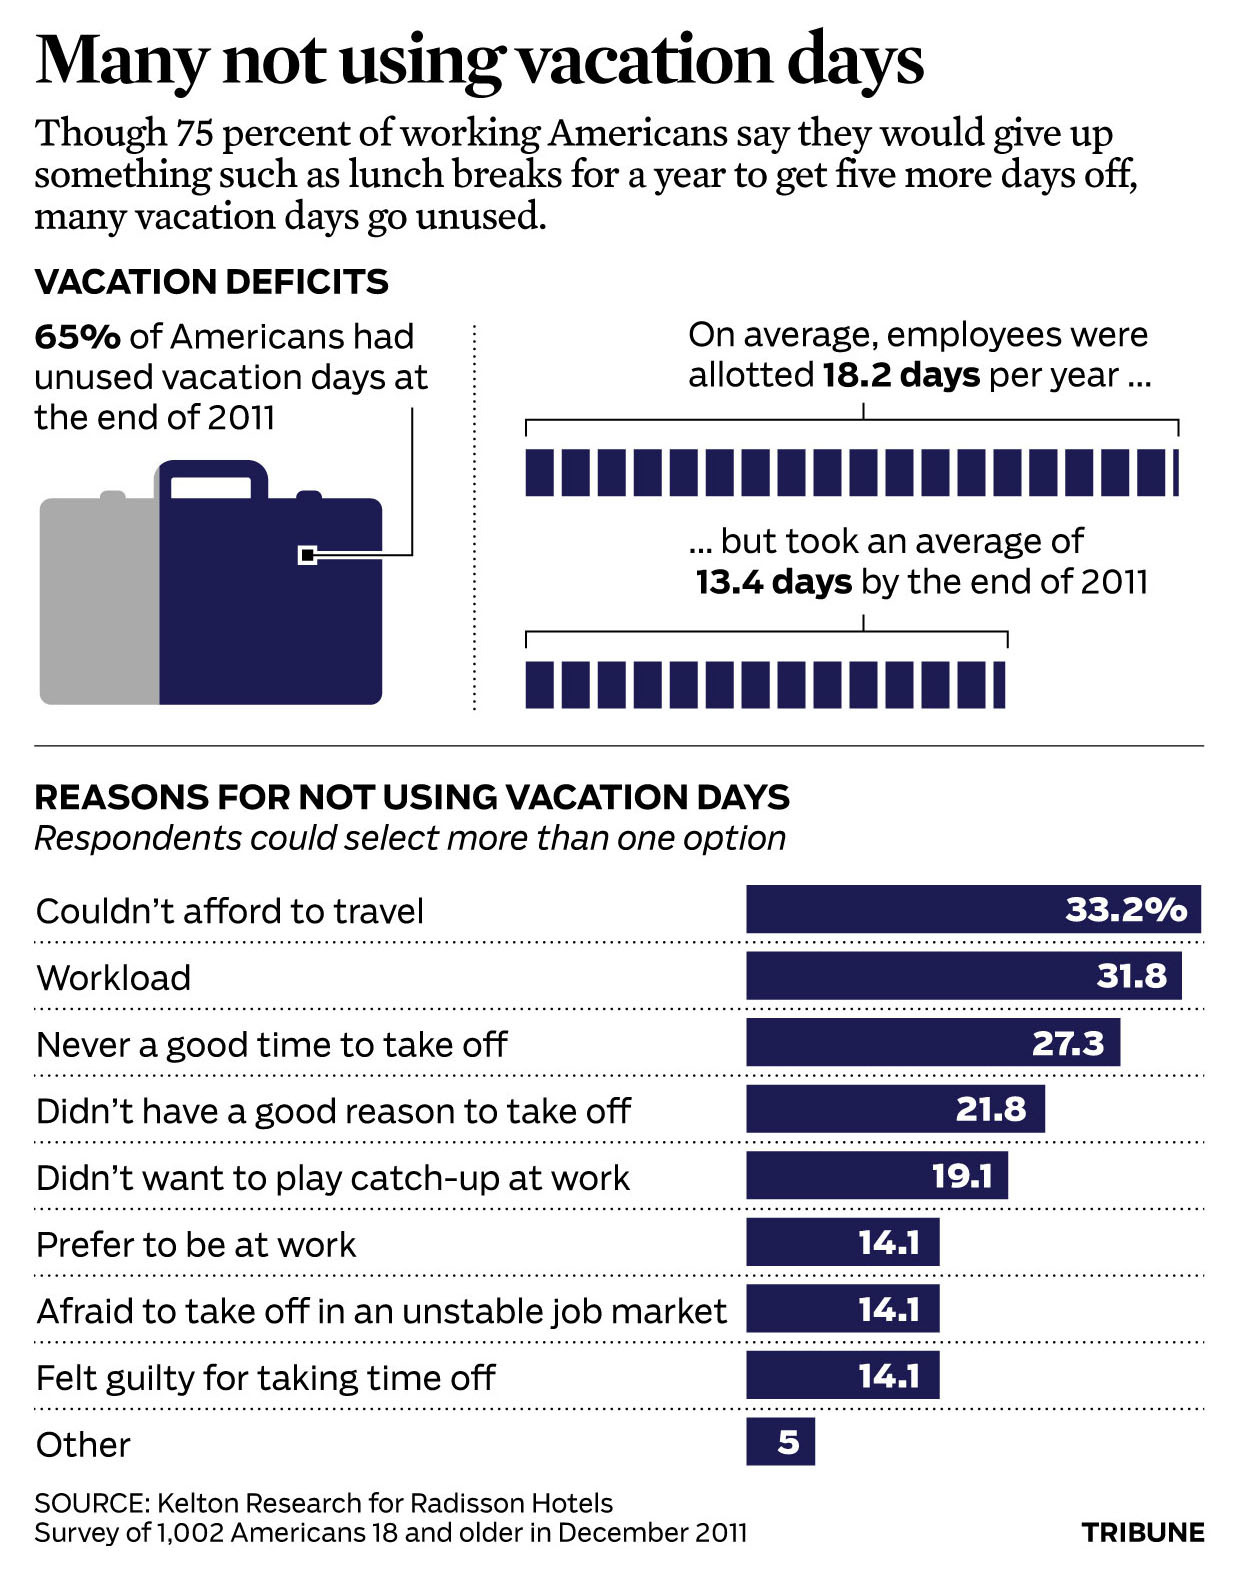 Vacation days: Do you use all yours? According to this graphic, probably not.